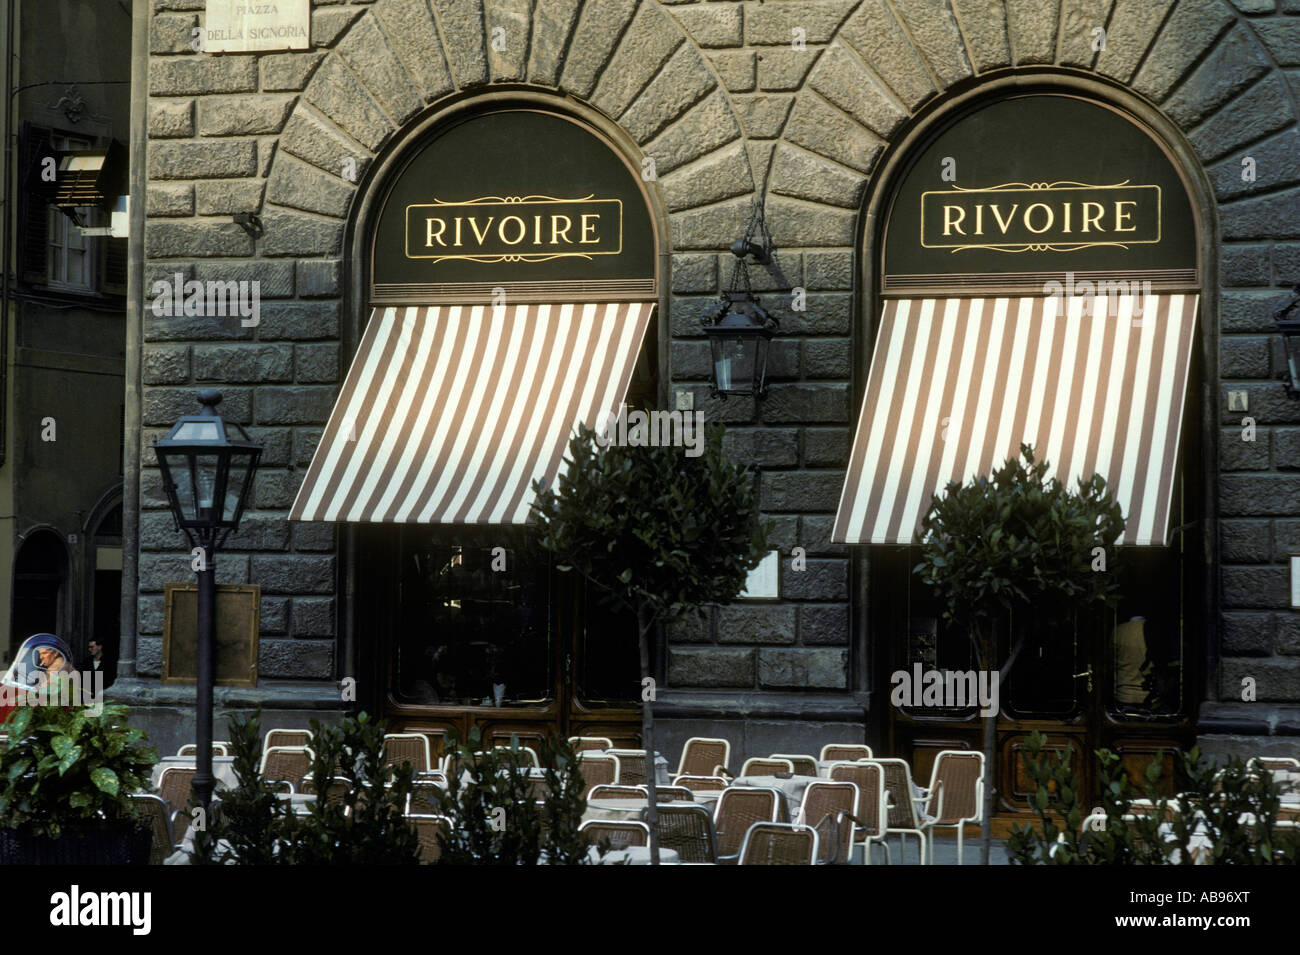 Florence Italy Italian Square Outdoor Restaurant Awnings